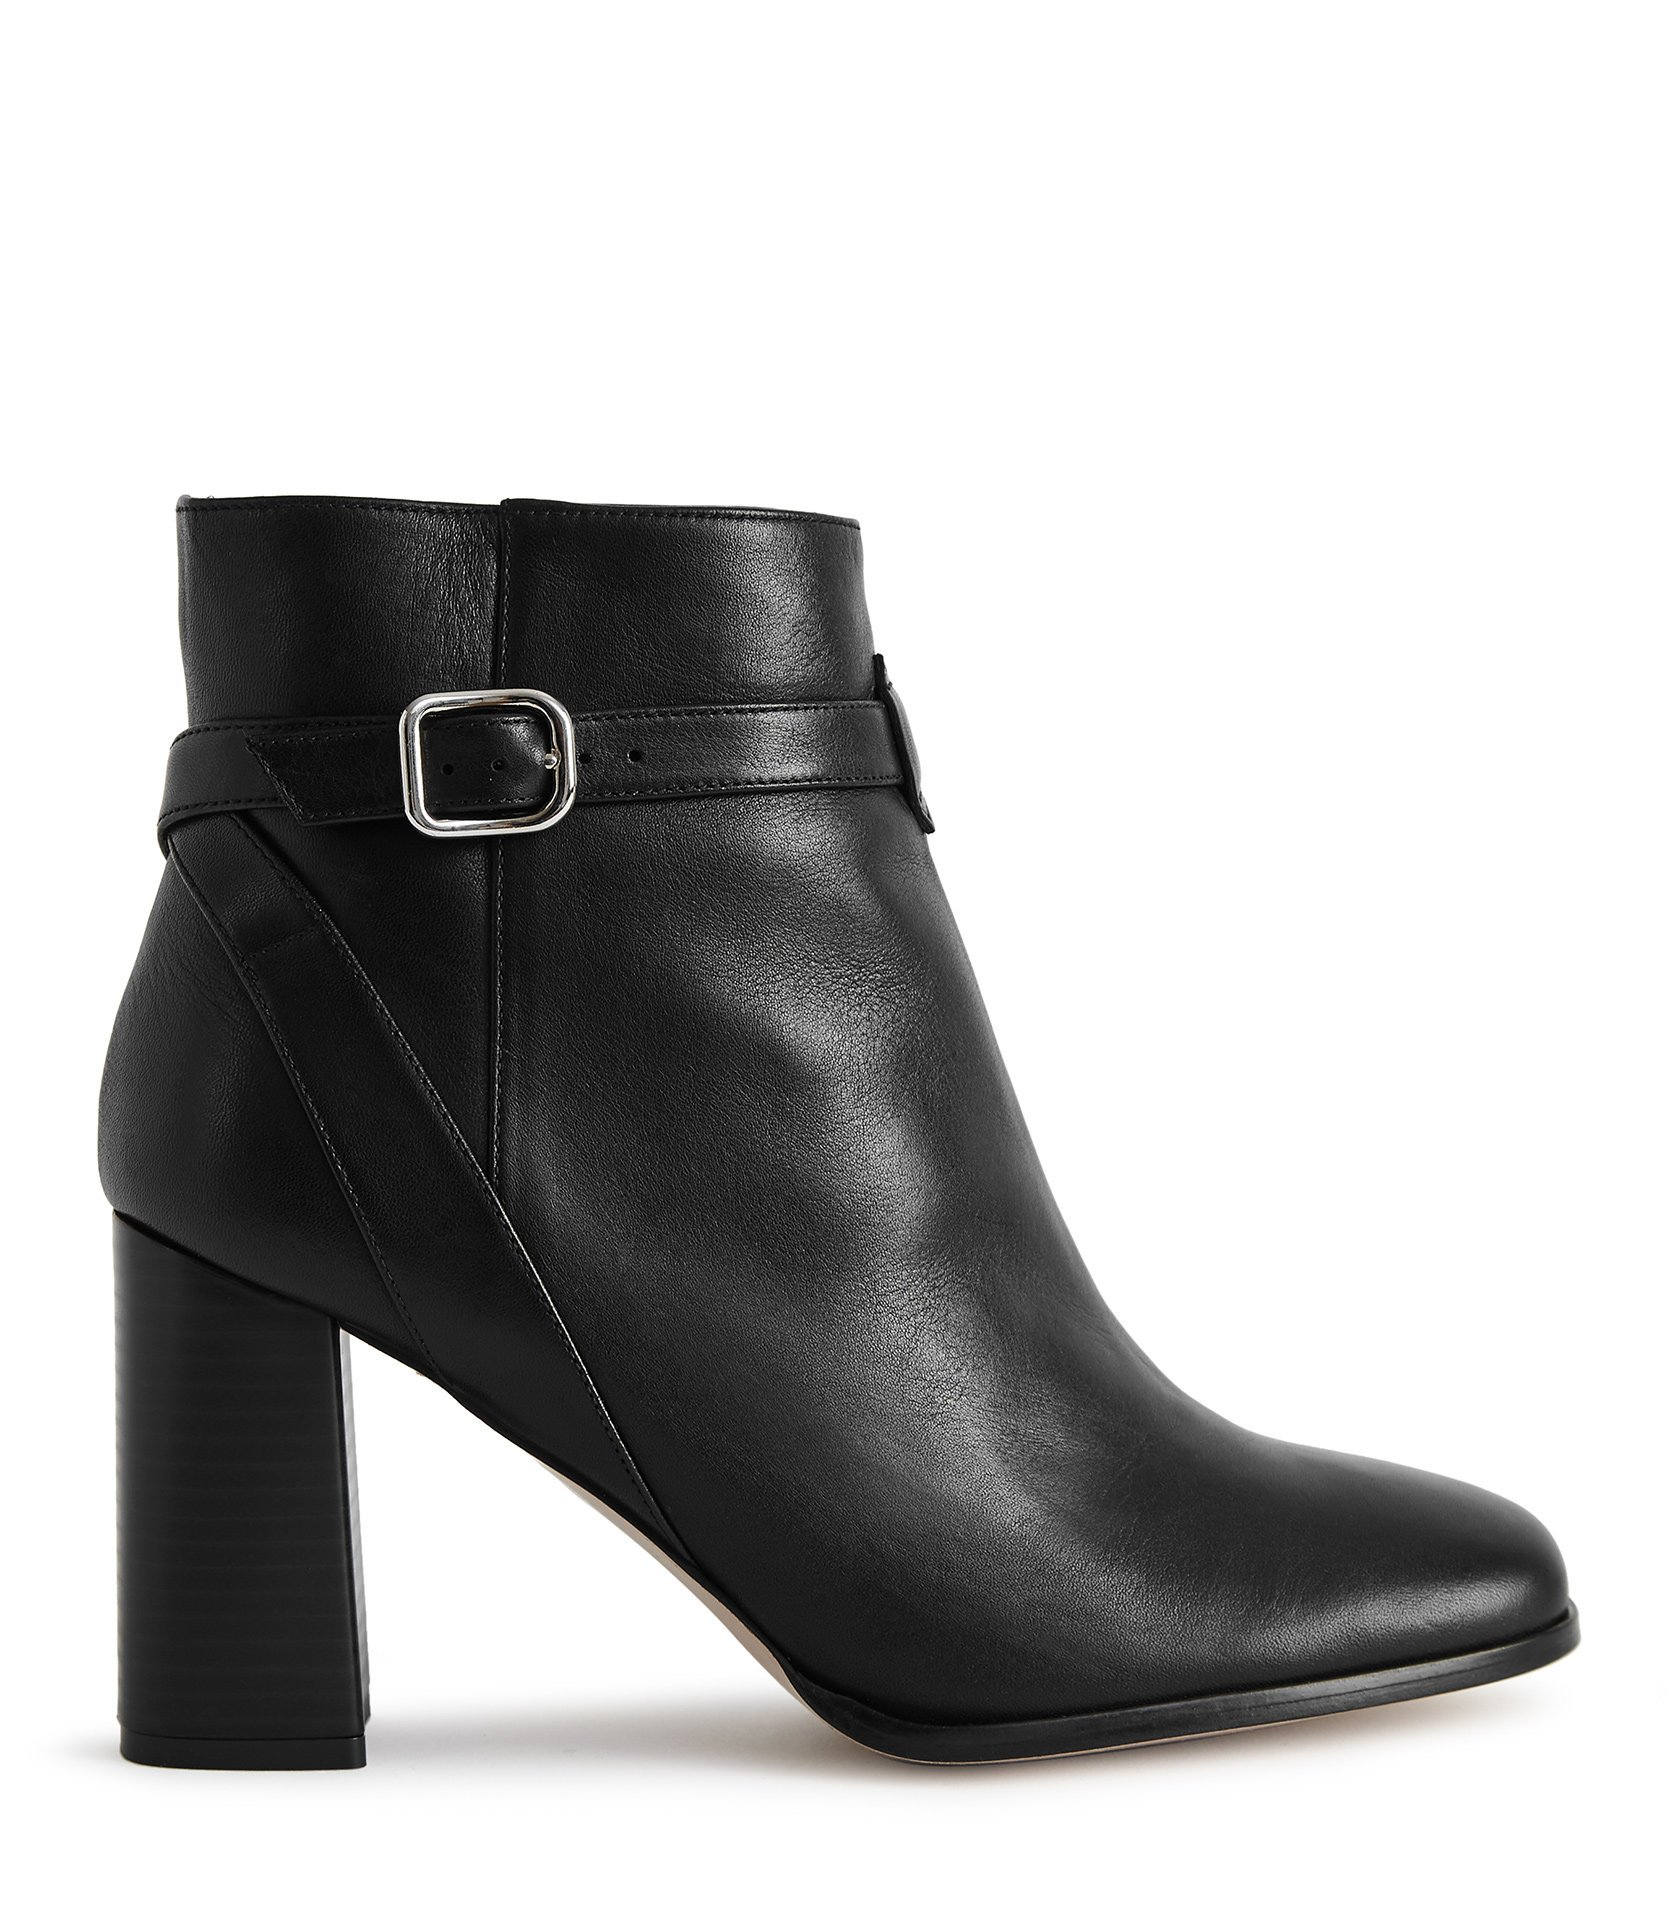 Fulham - Leather Ankle Boots Black $130